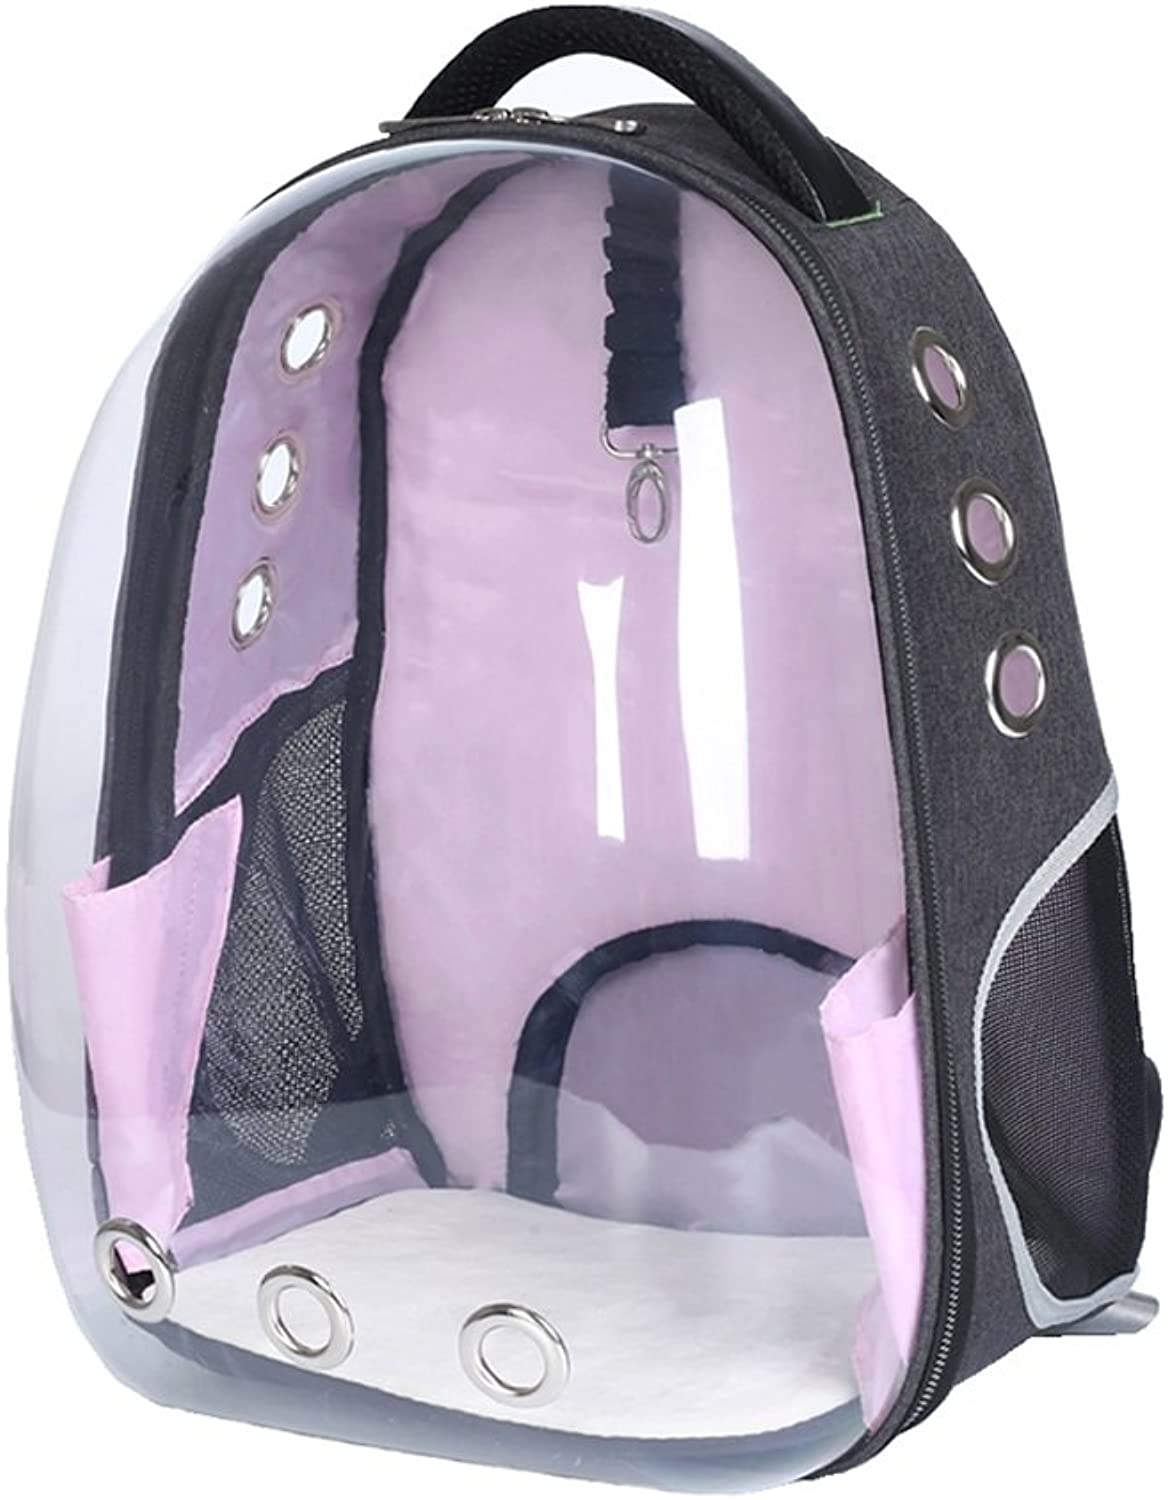 Pink Transparent Space Capsule Breathable Waterproof Pet Backpack Carrier Astronaut Pet Cat Dog Puppy Carrier Bubble Travel Bag Outdoor Portable Premium Backpack 33cmX28cmX44cm